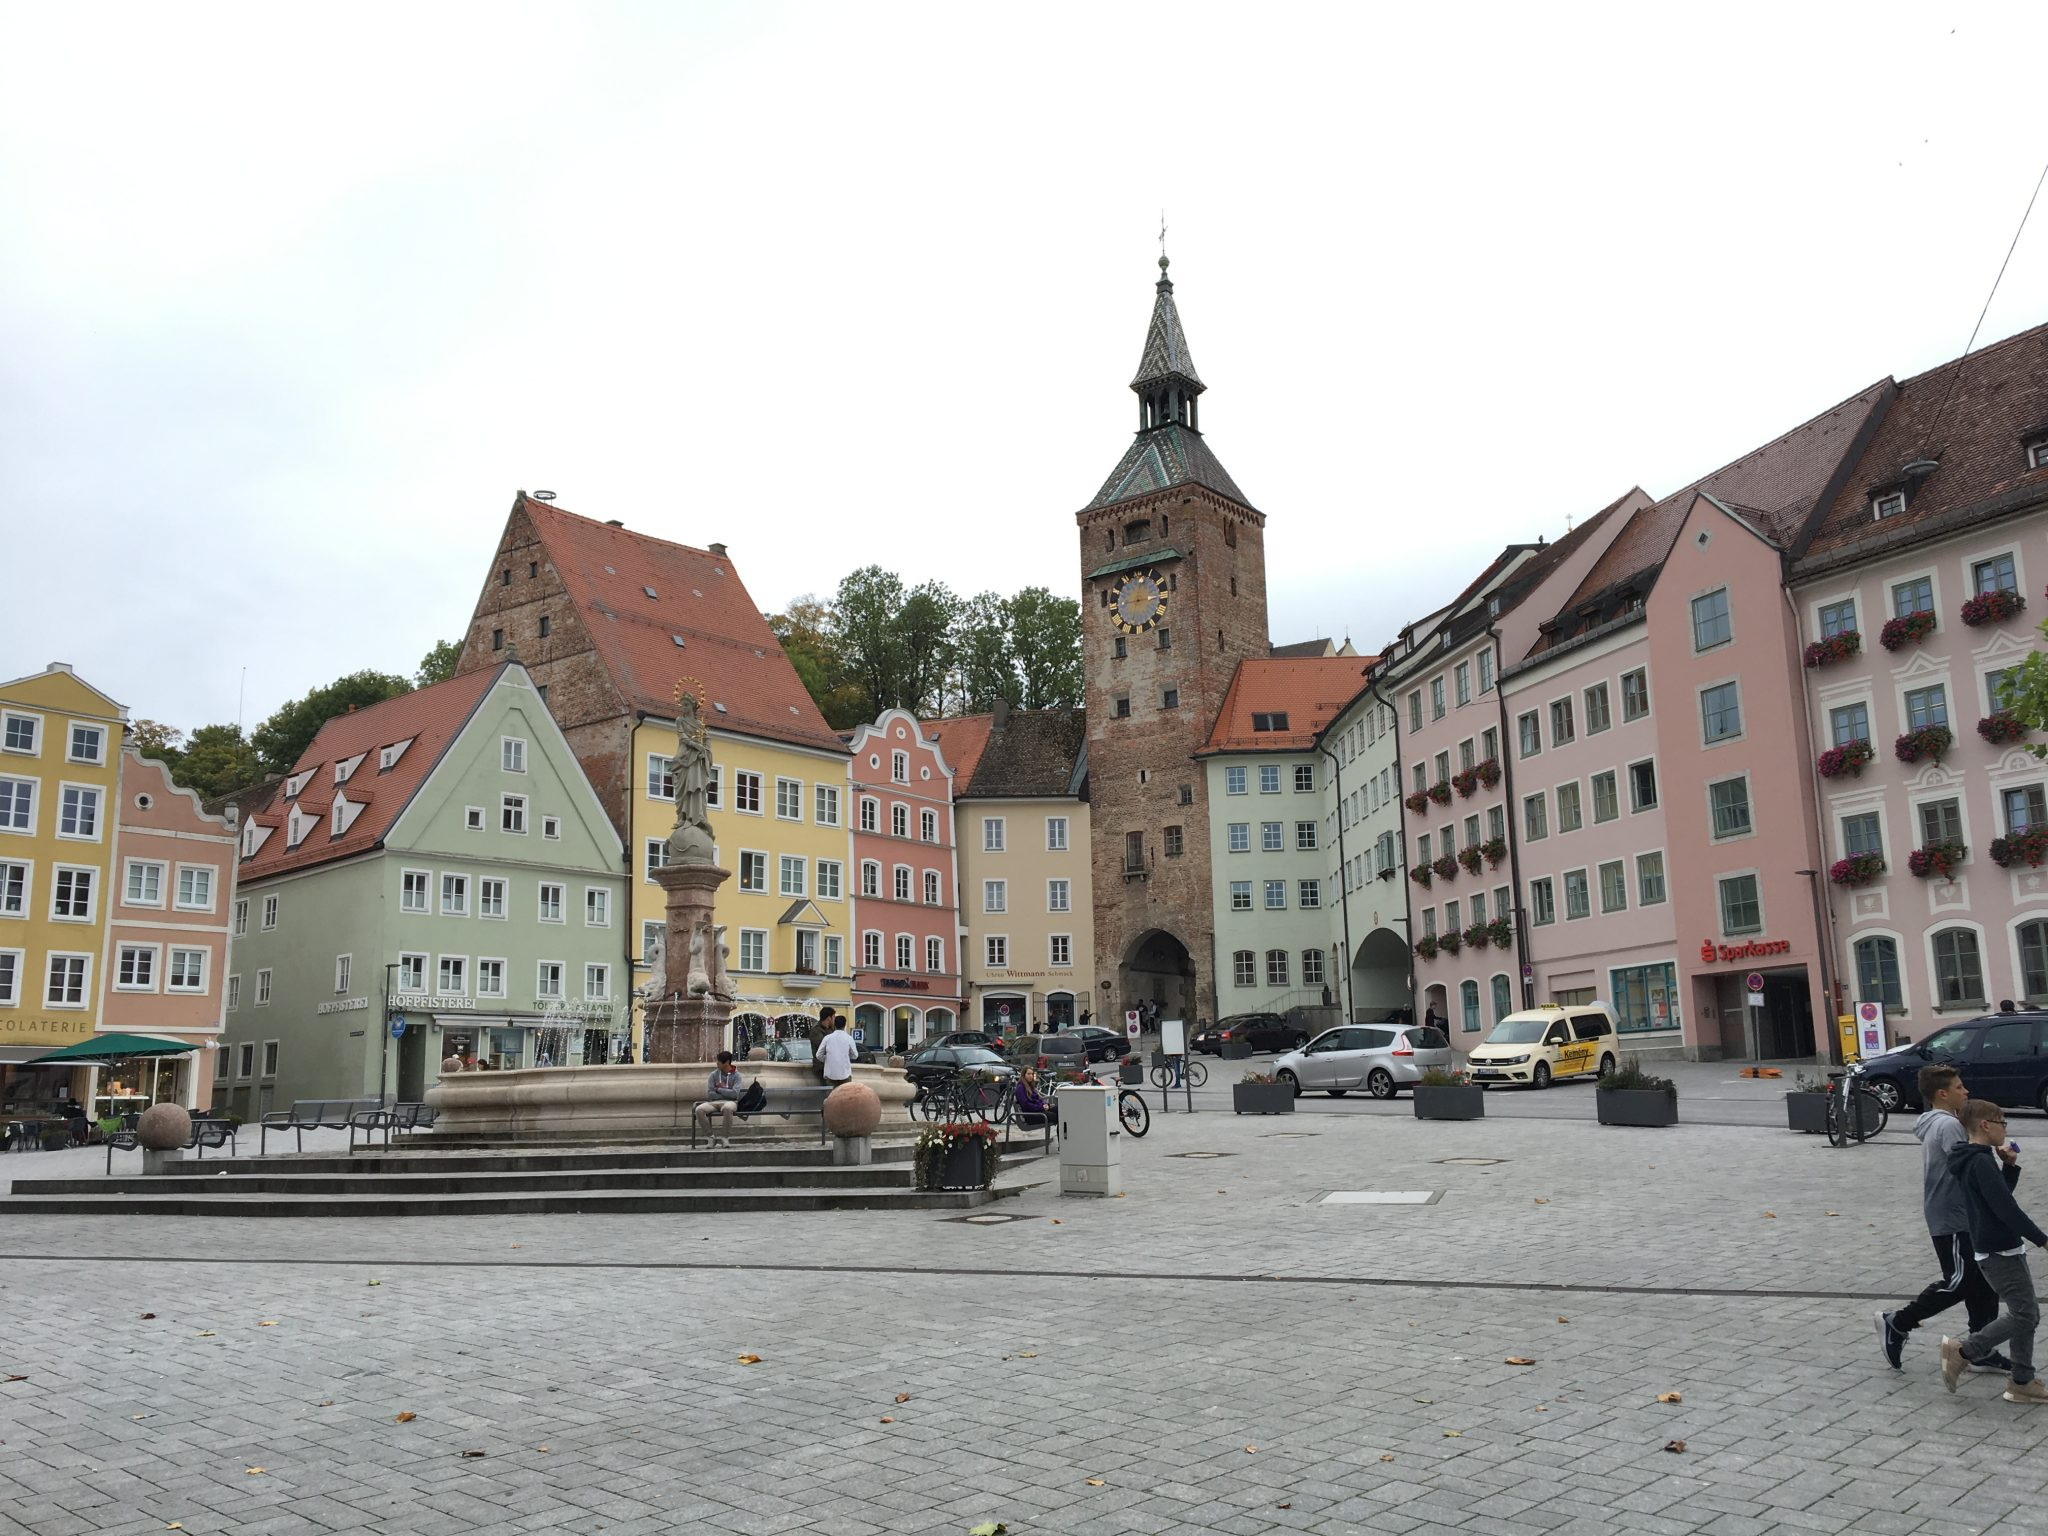 landsberg am lech black personals Find out about going to landsberg am lech, a fairytale town in bavaria you can do it as a day trip from munich particularly of interest if you fancy some instagram shots of pastel-coloured houses and quaint cobbled streets.